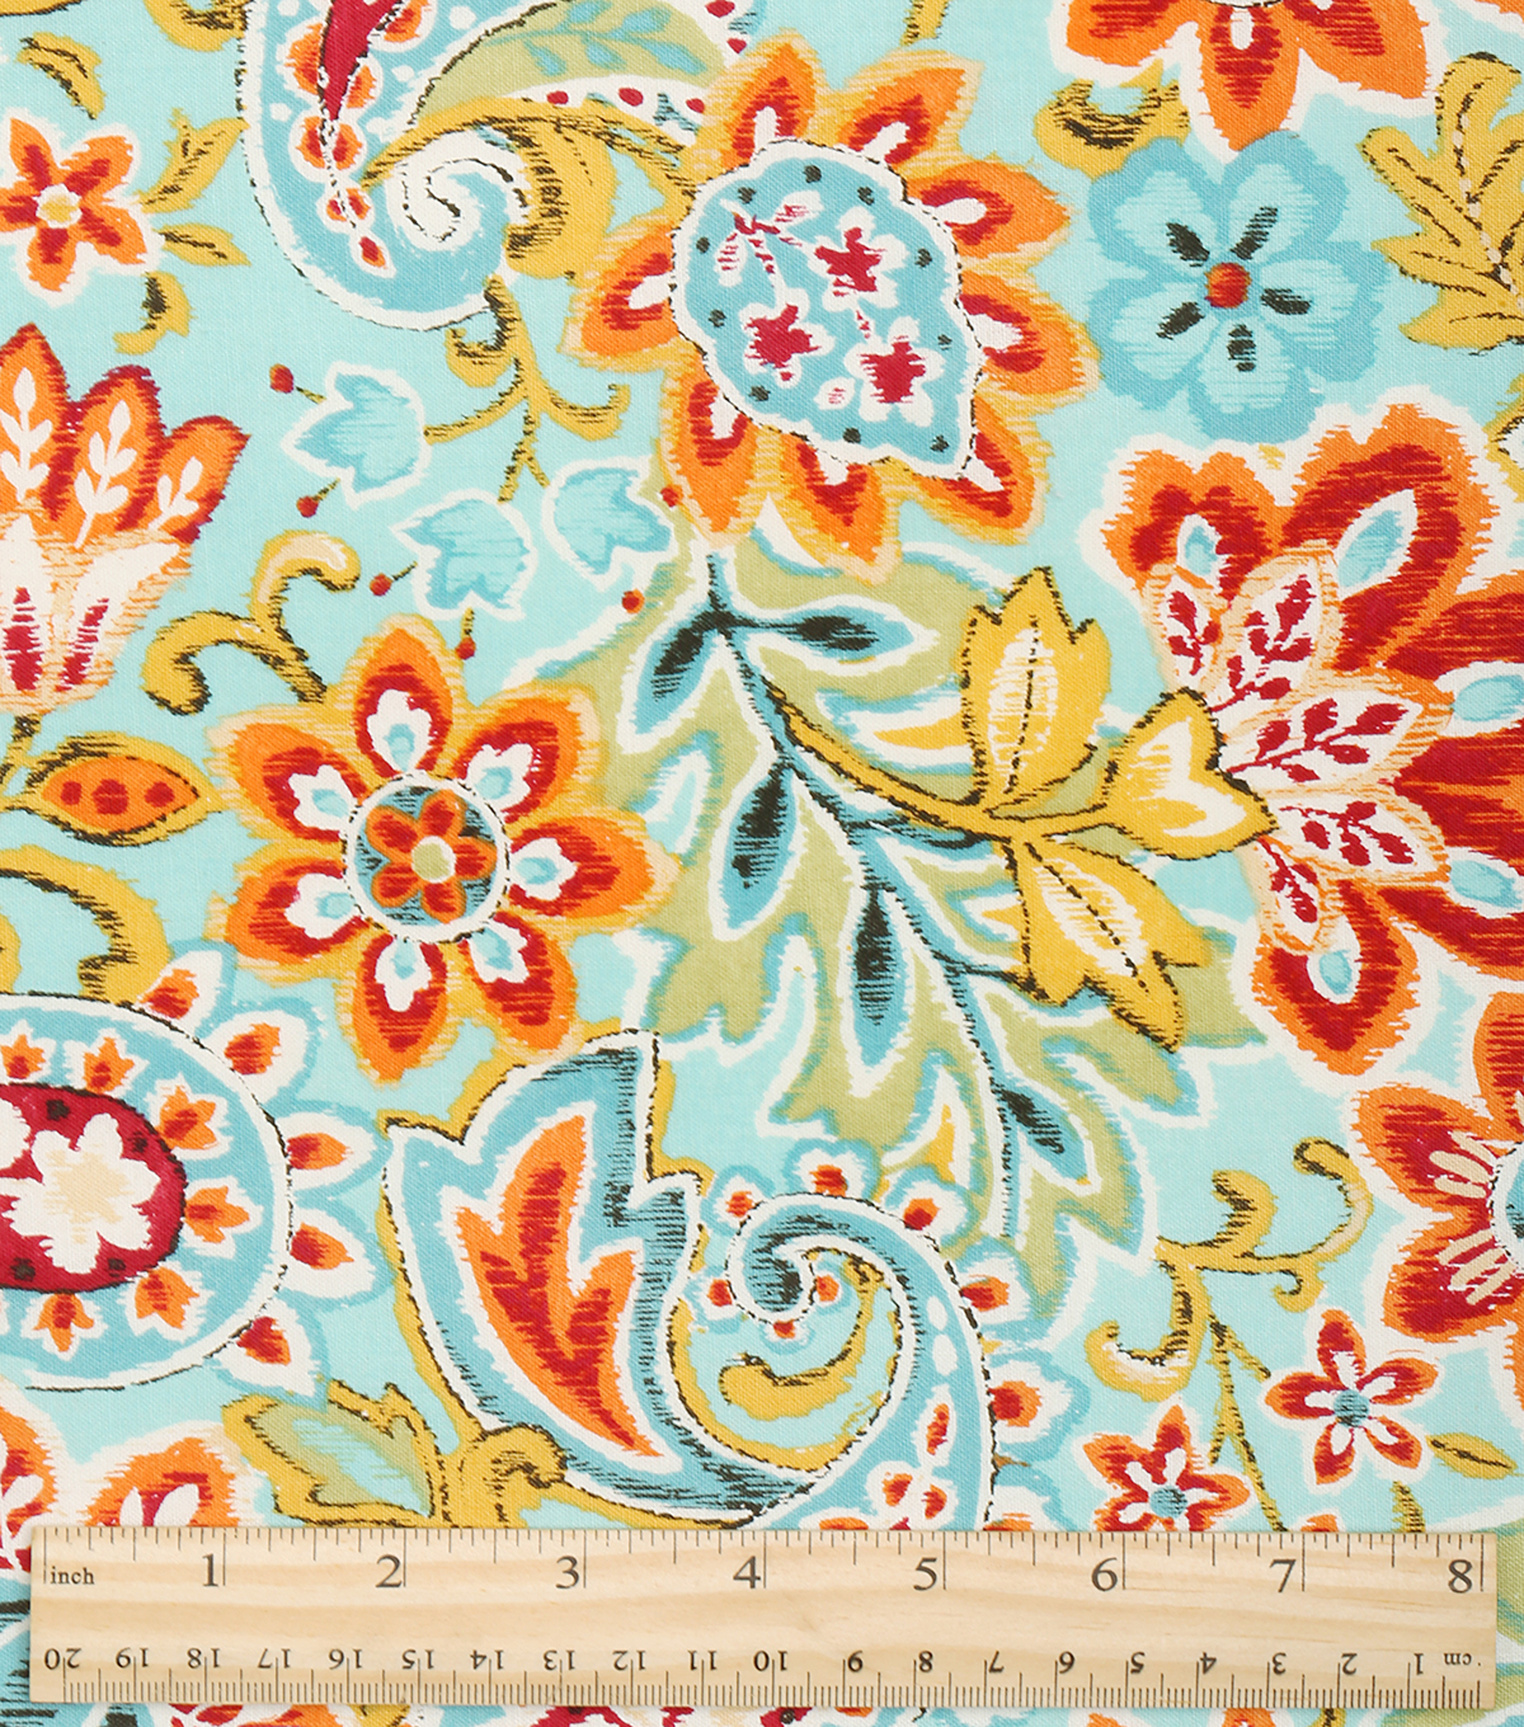 Keepsake Calico Cotton Fabric-Bright Ikat Paisley Floral